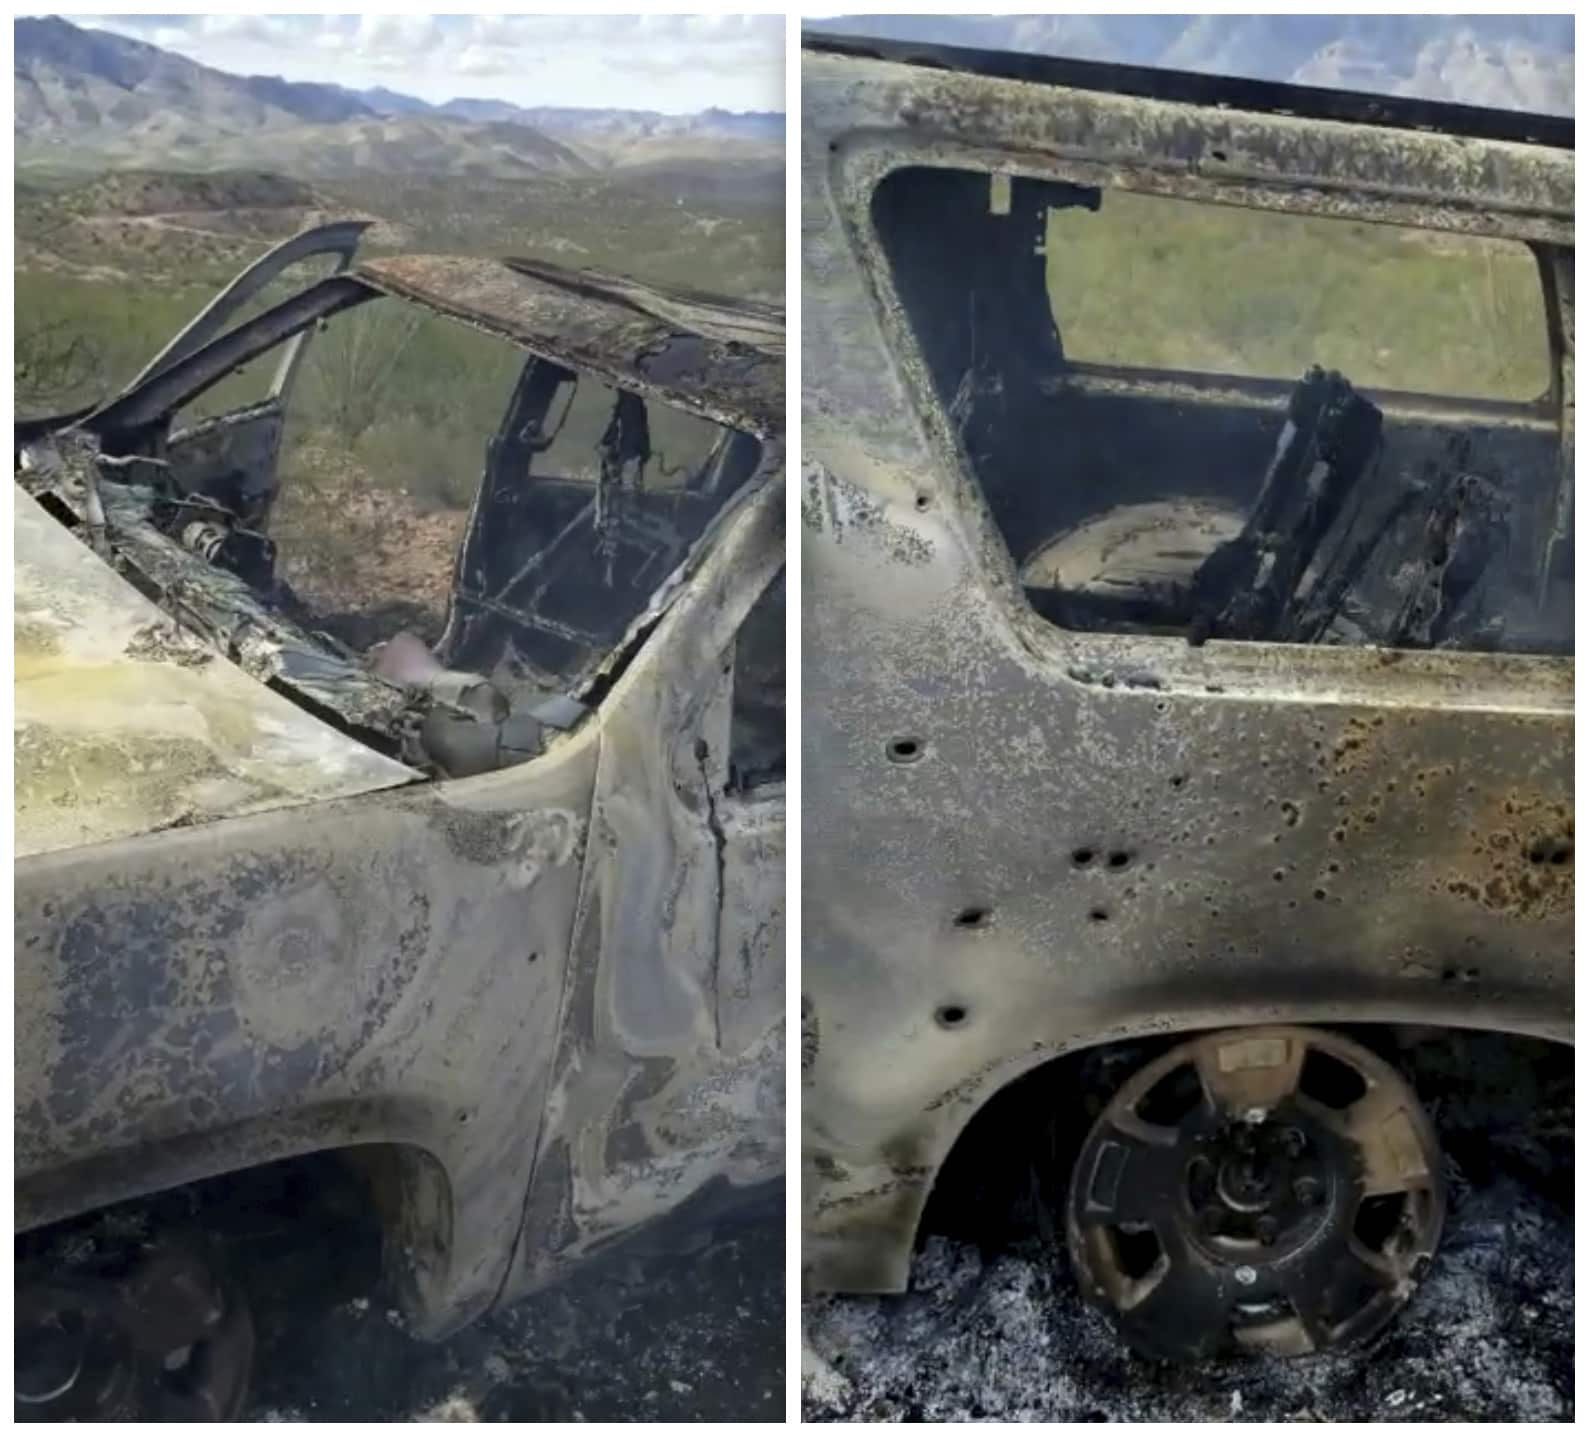 Photo of burned-out vehicle